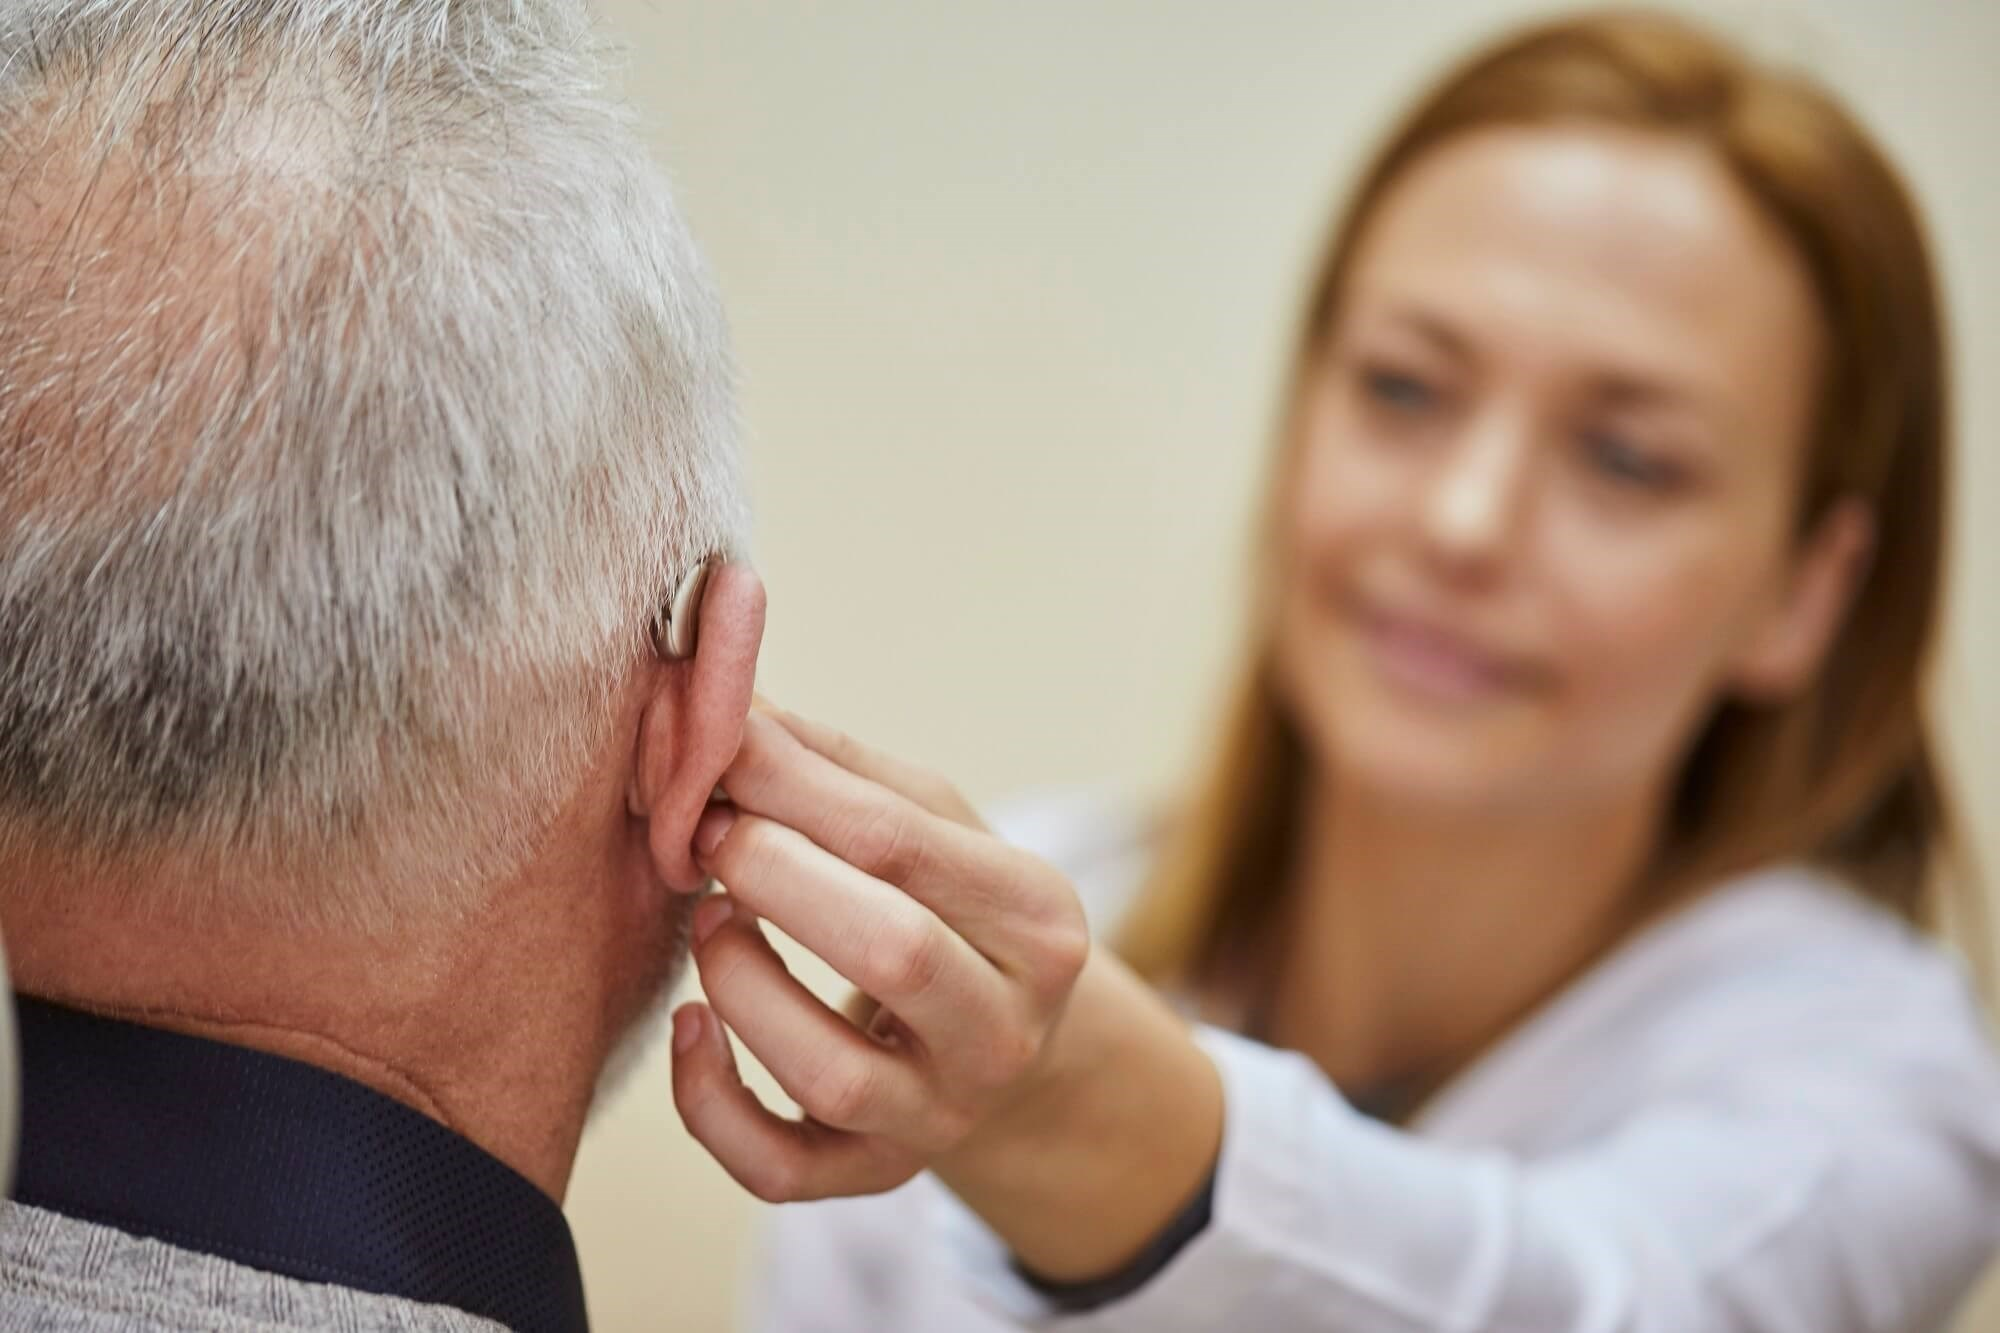 Patients with rheumatoid arthritis have an increased risk for sudden sensorineural hearing loss.